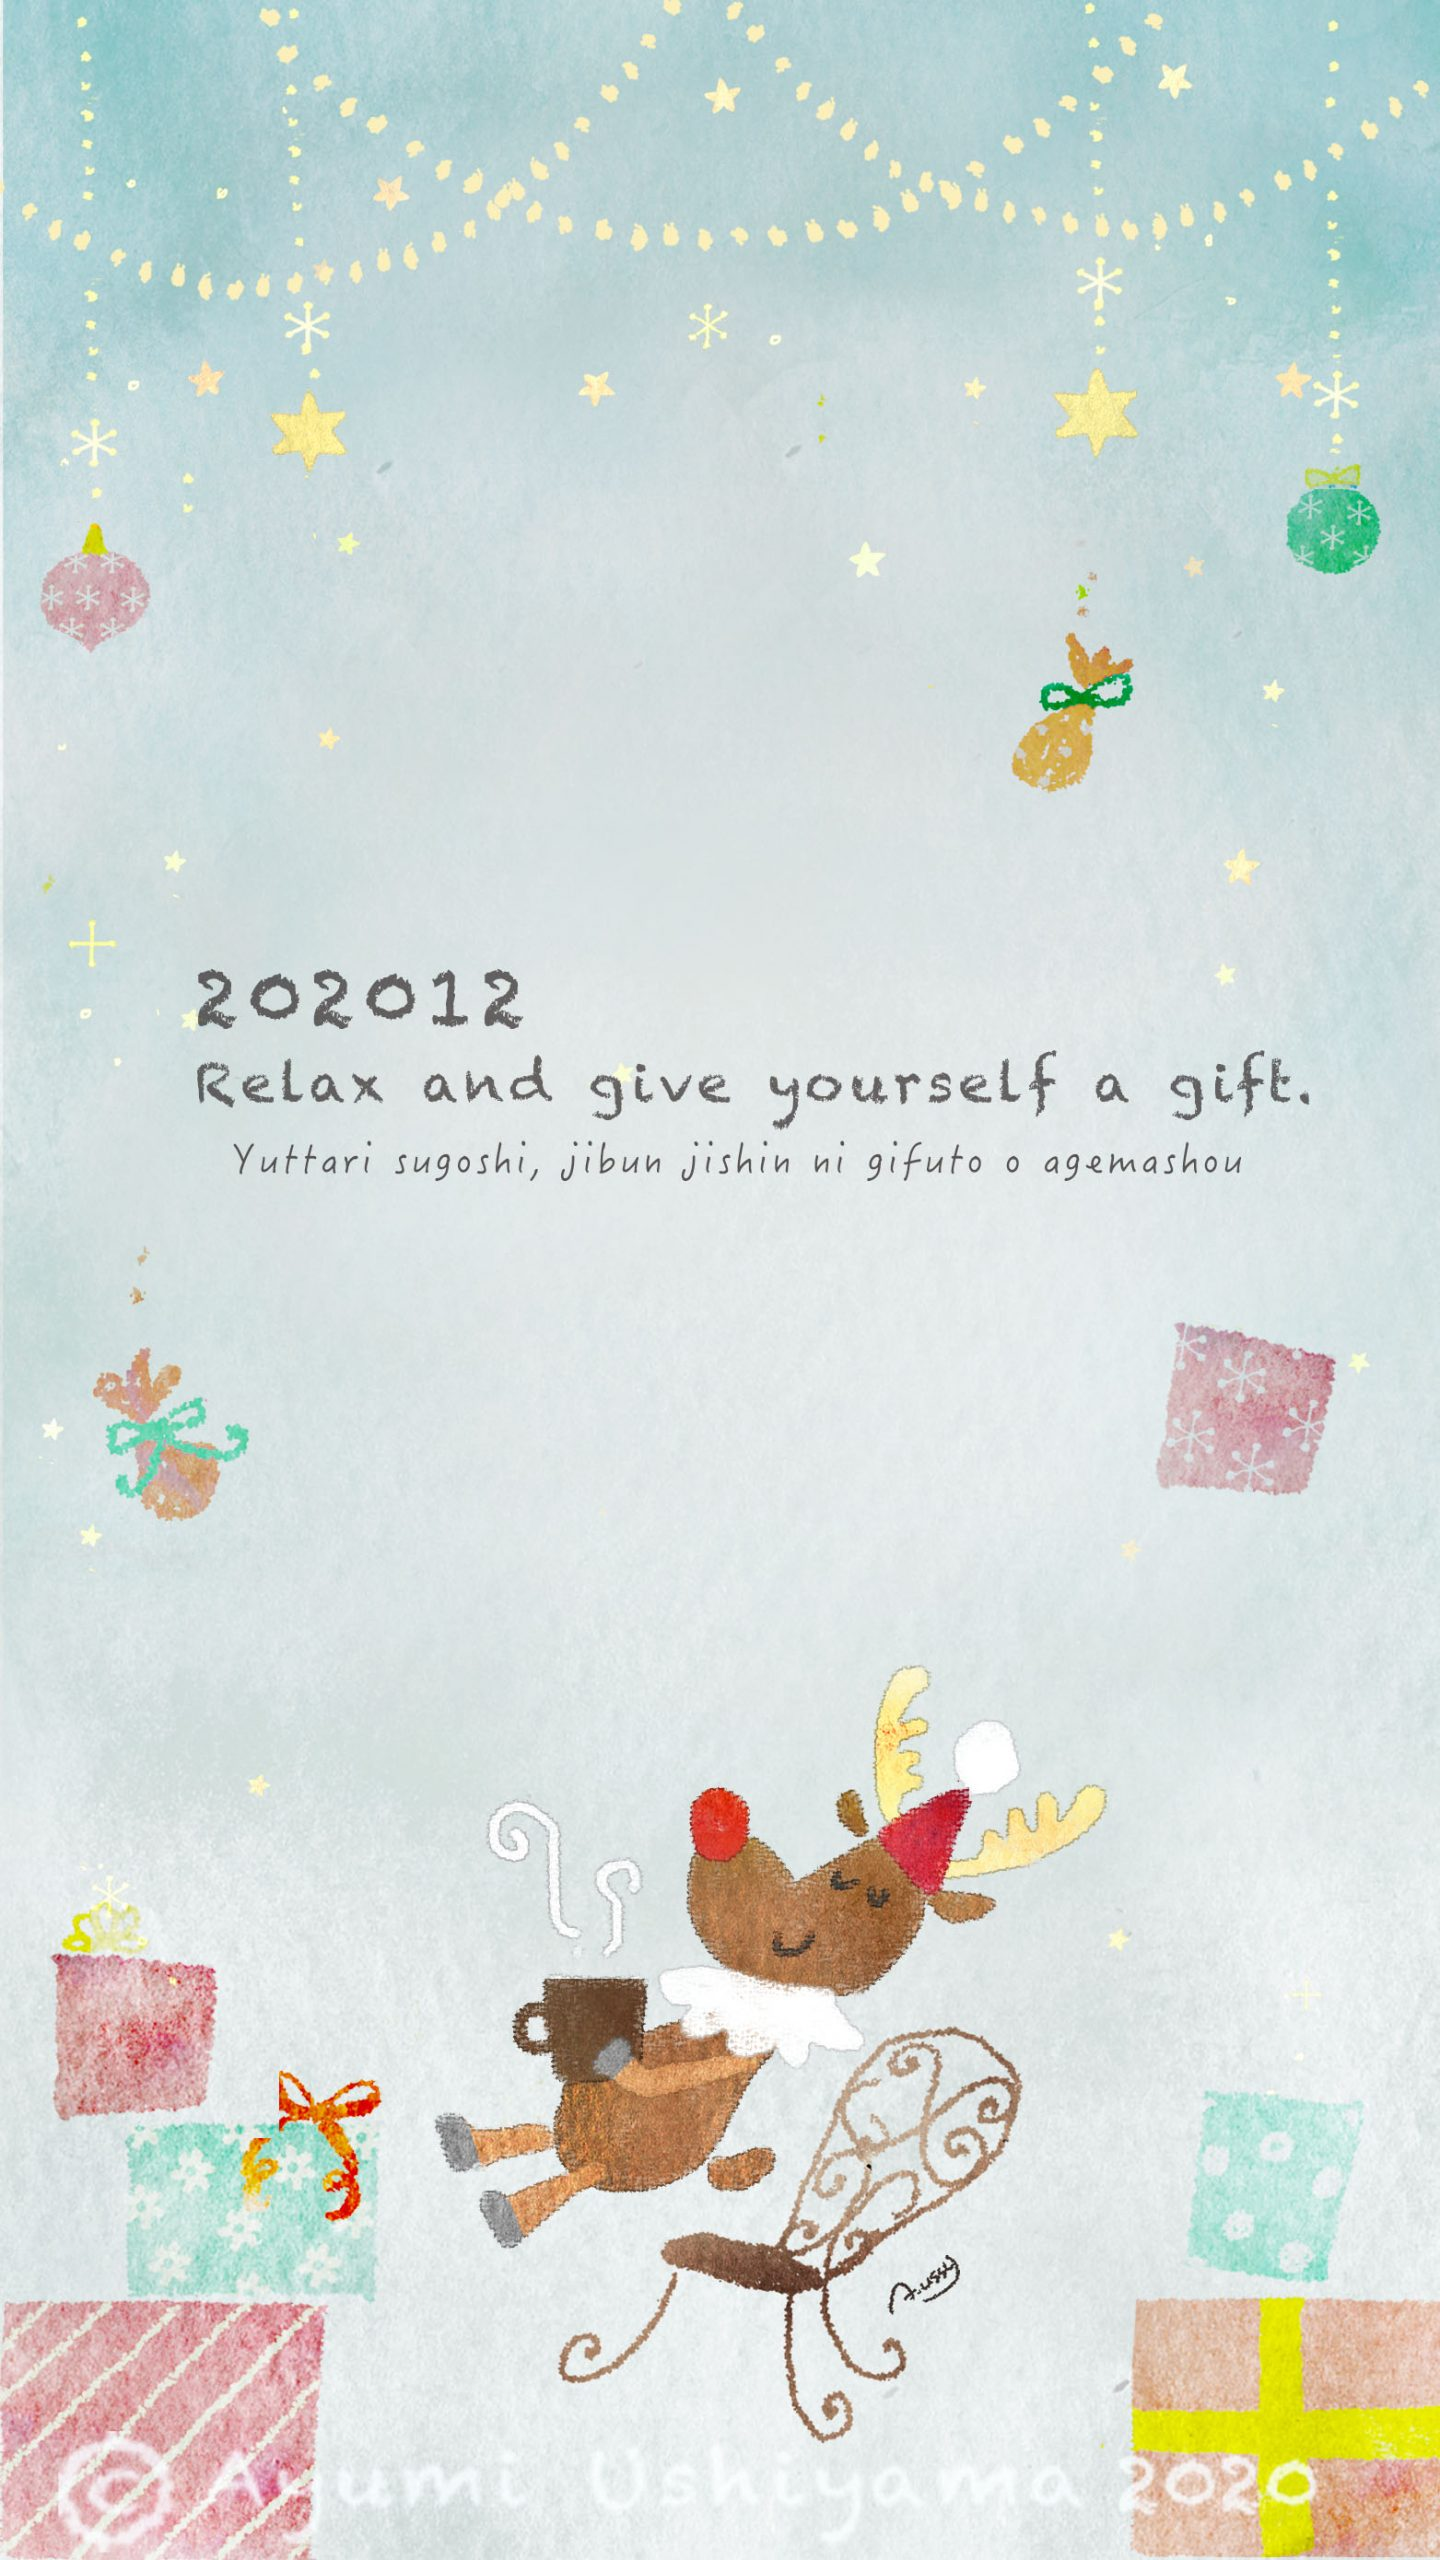 2020.12『Relax and give yourself a gift』ローマ字